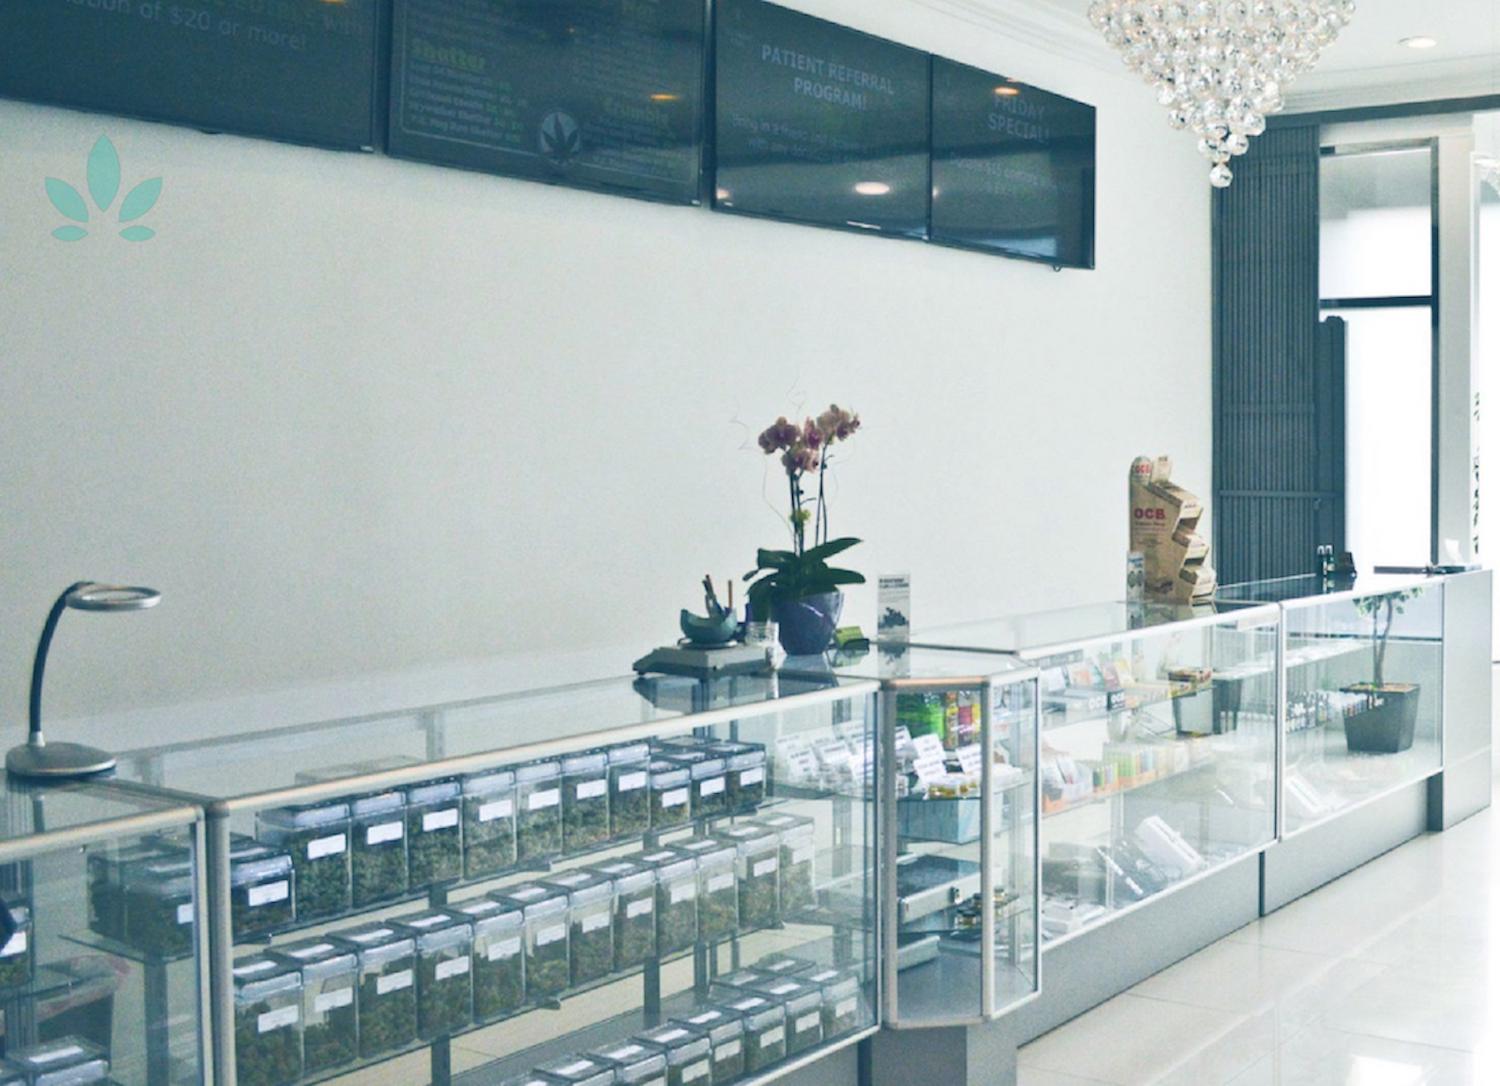 First Dispensary in Maryland has OPENED its doors!